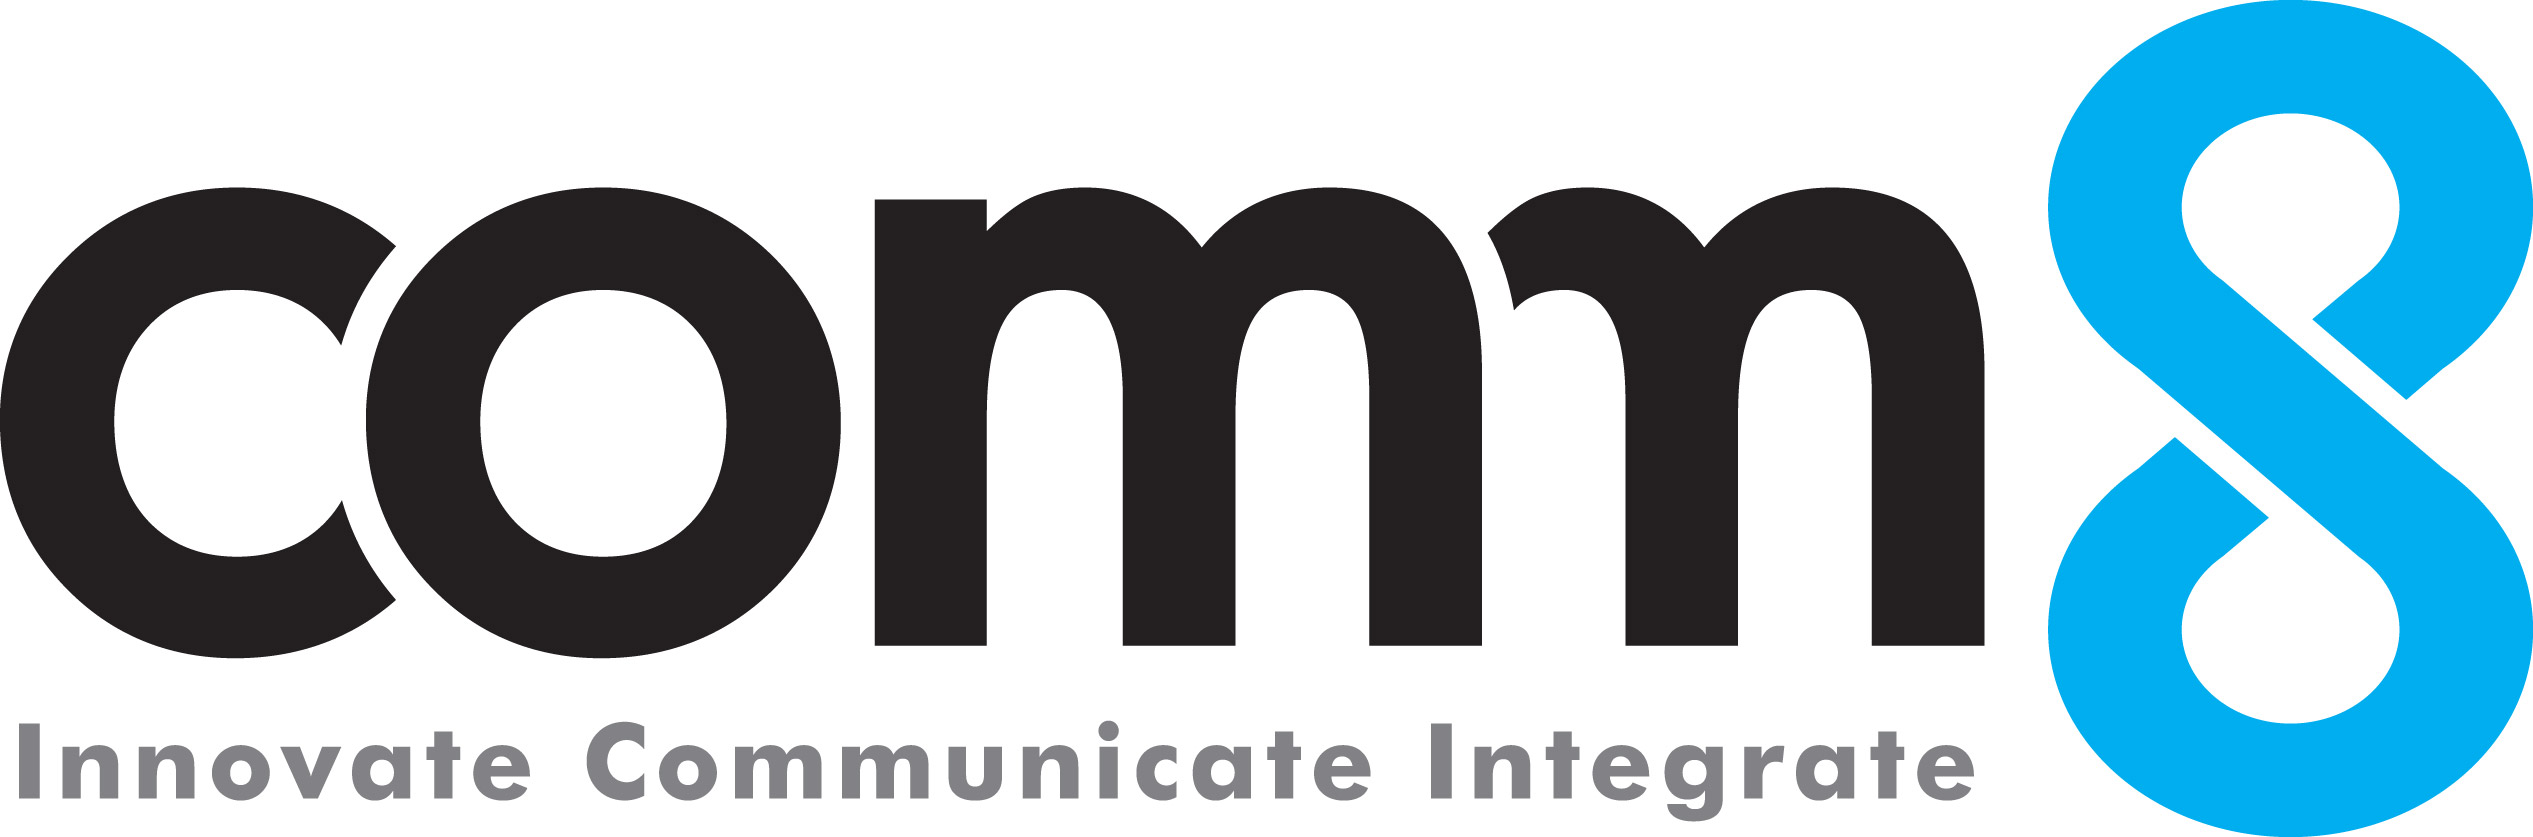 Combined Communications Solutions